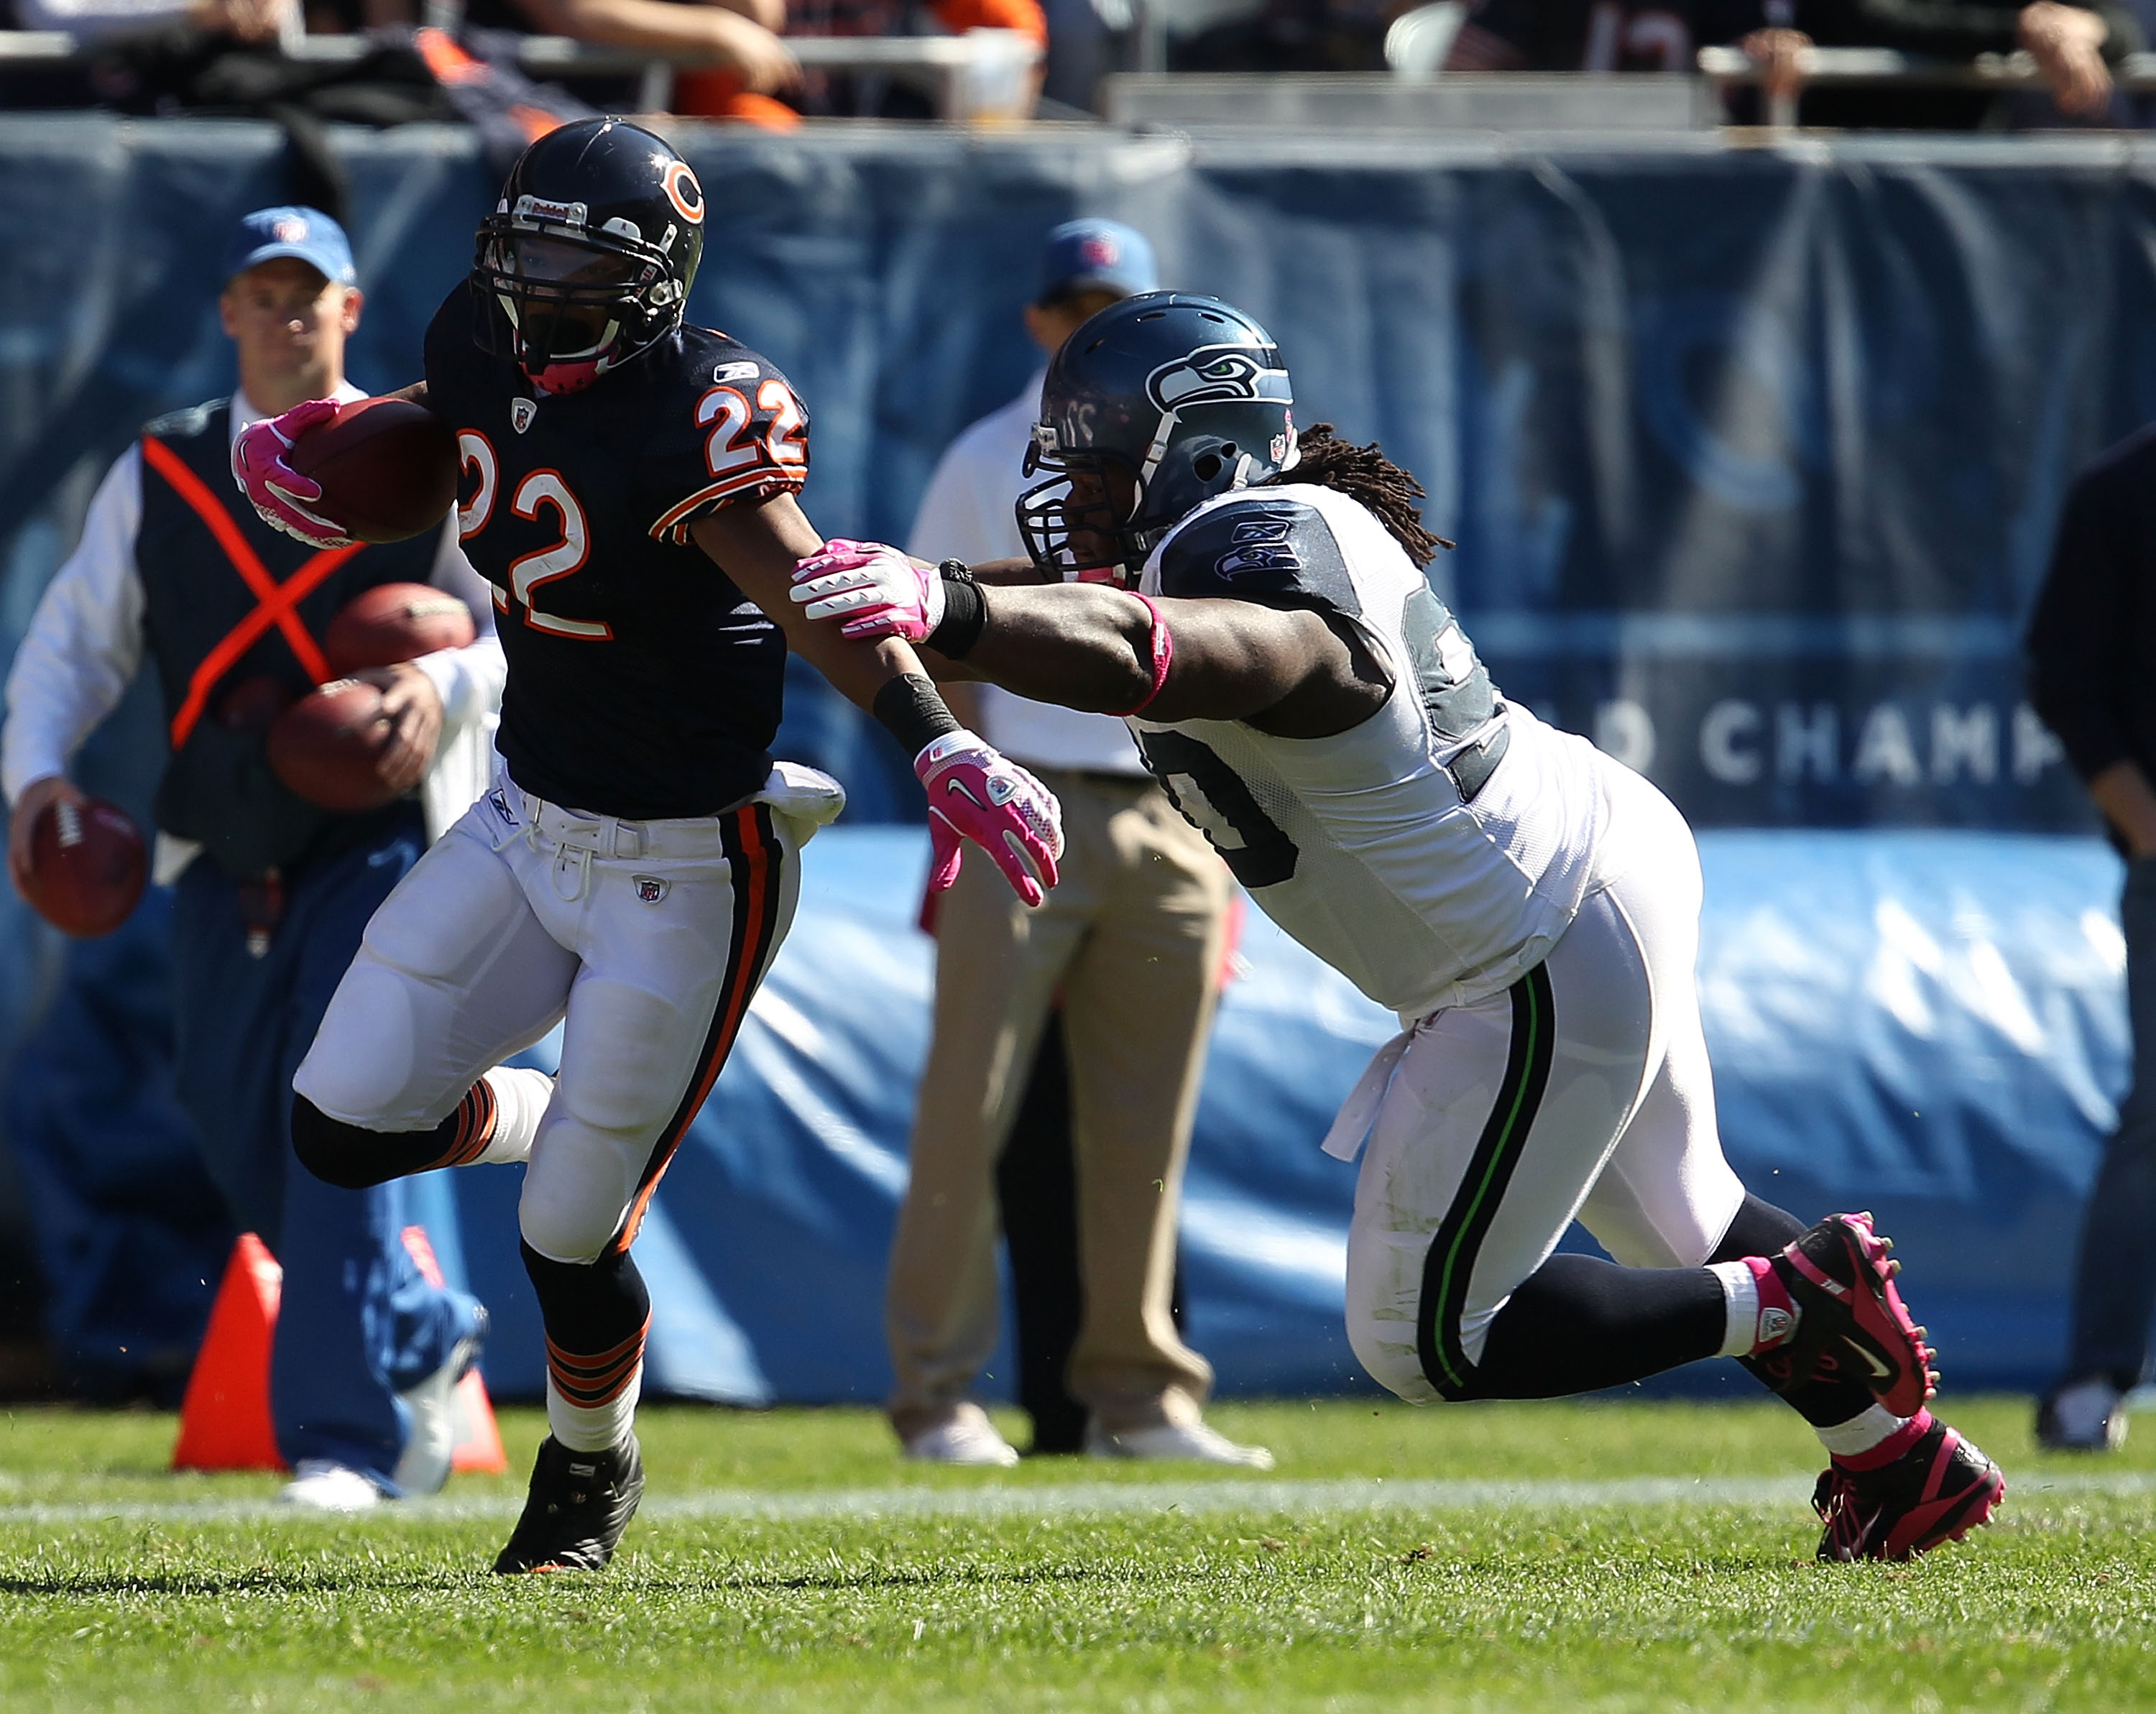 CHICAGO - OCTOBER 17: Matt Forte #22 of the Chicago Bears runs past Colin Cole #90 of the Seattle Seahawks at Soldier Field on October 17, 2010 in Chicago, Illinois. The Seahawks defeated the Bears 23-20. (Photo by Jonathan Daniel/Getty Images)